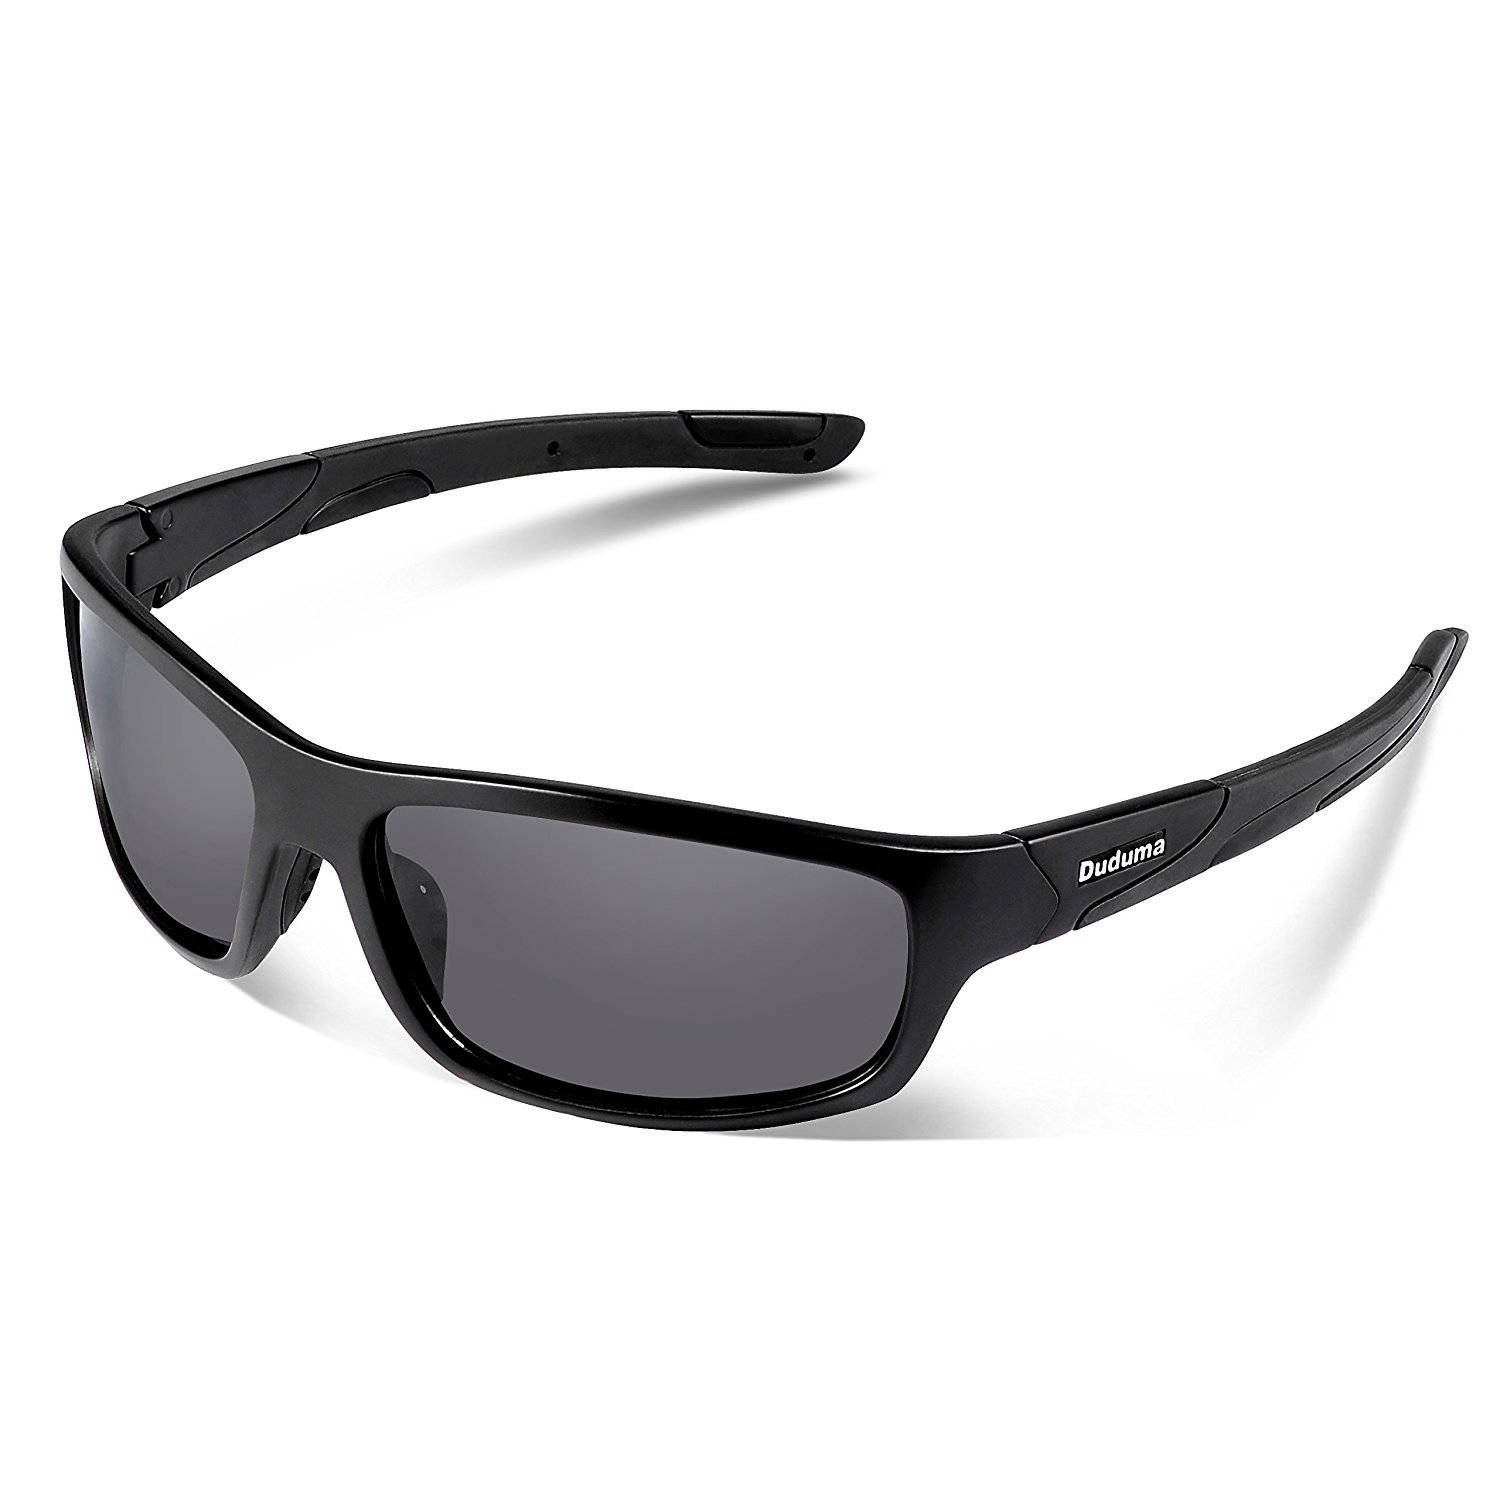 f5eb342243a Duduma Polarized Sports Sunglasses for Men Women Baseball Running Cycling  Fishing Driving Golf Softball Hiking Sunglasses